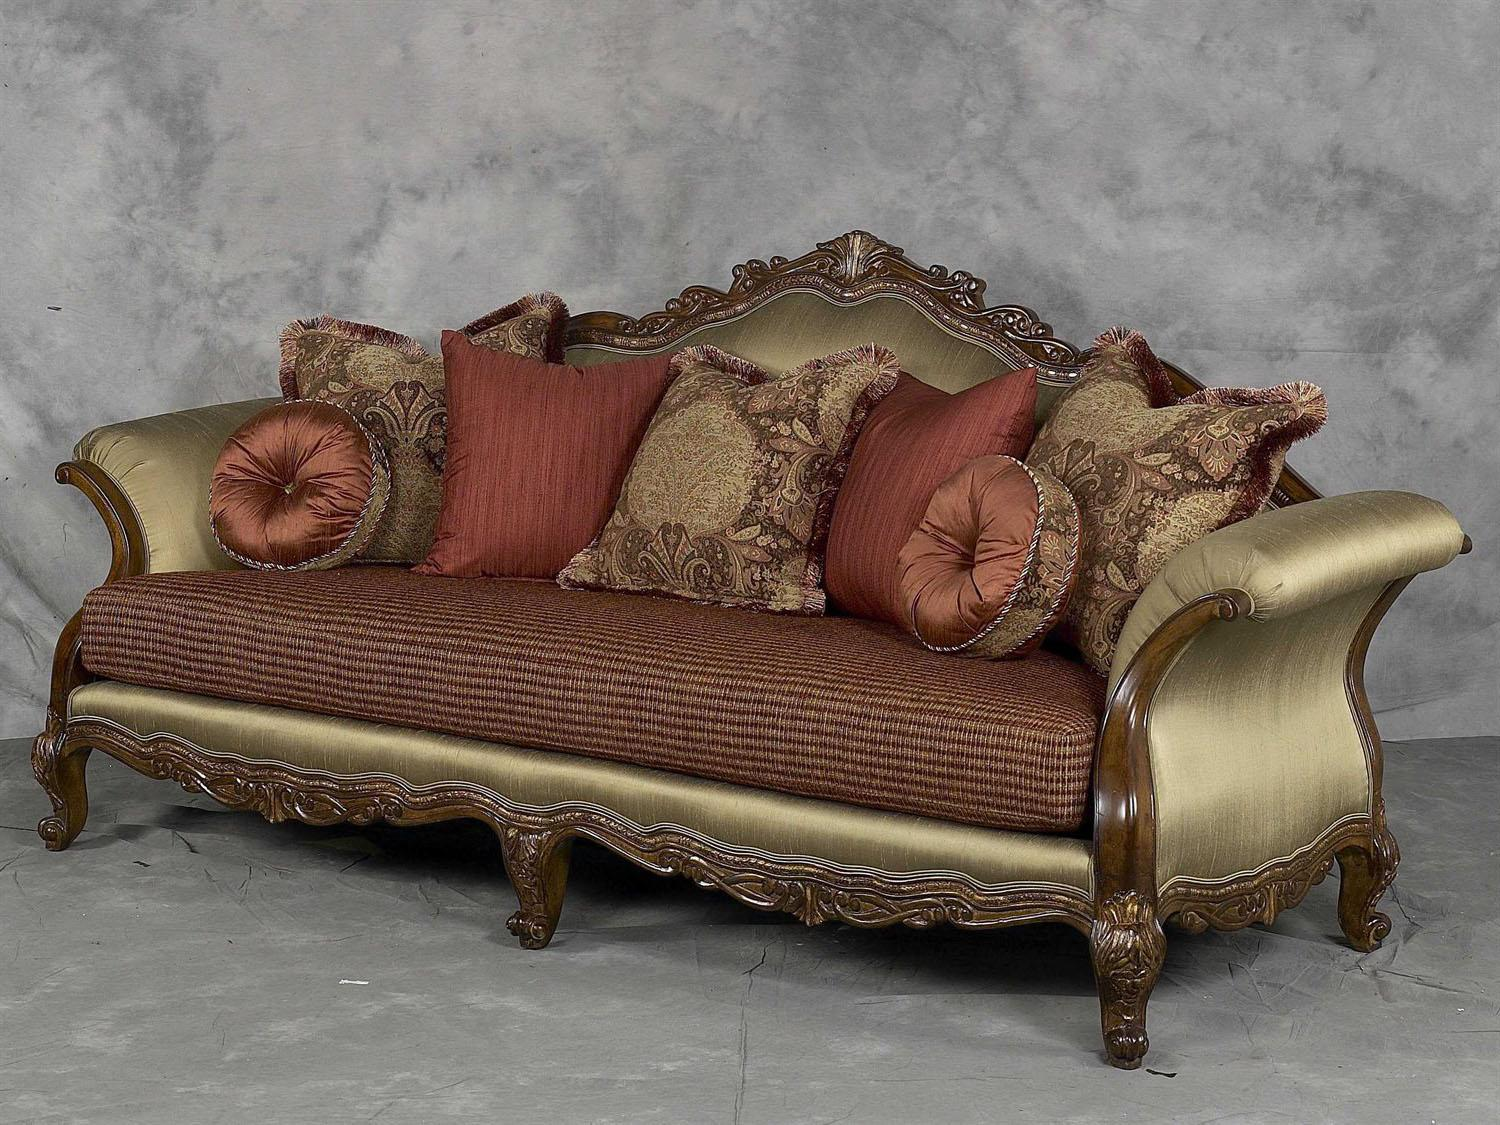 Bennetti Luxury Silk Chenille Solid Carved Wood Sofa Regalia Sofa  Classic Traditional